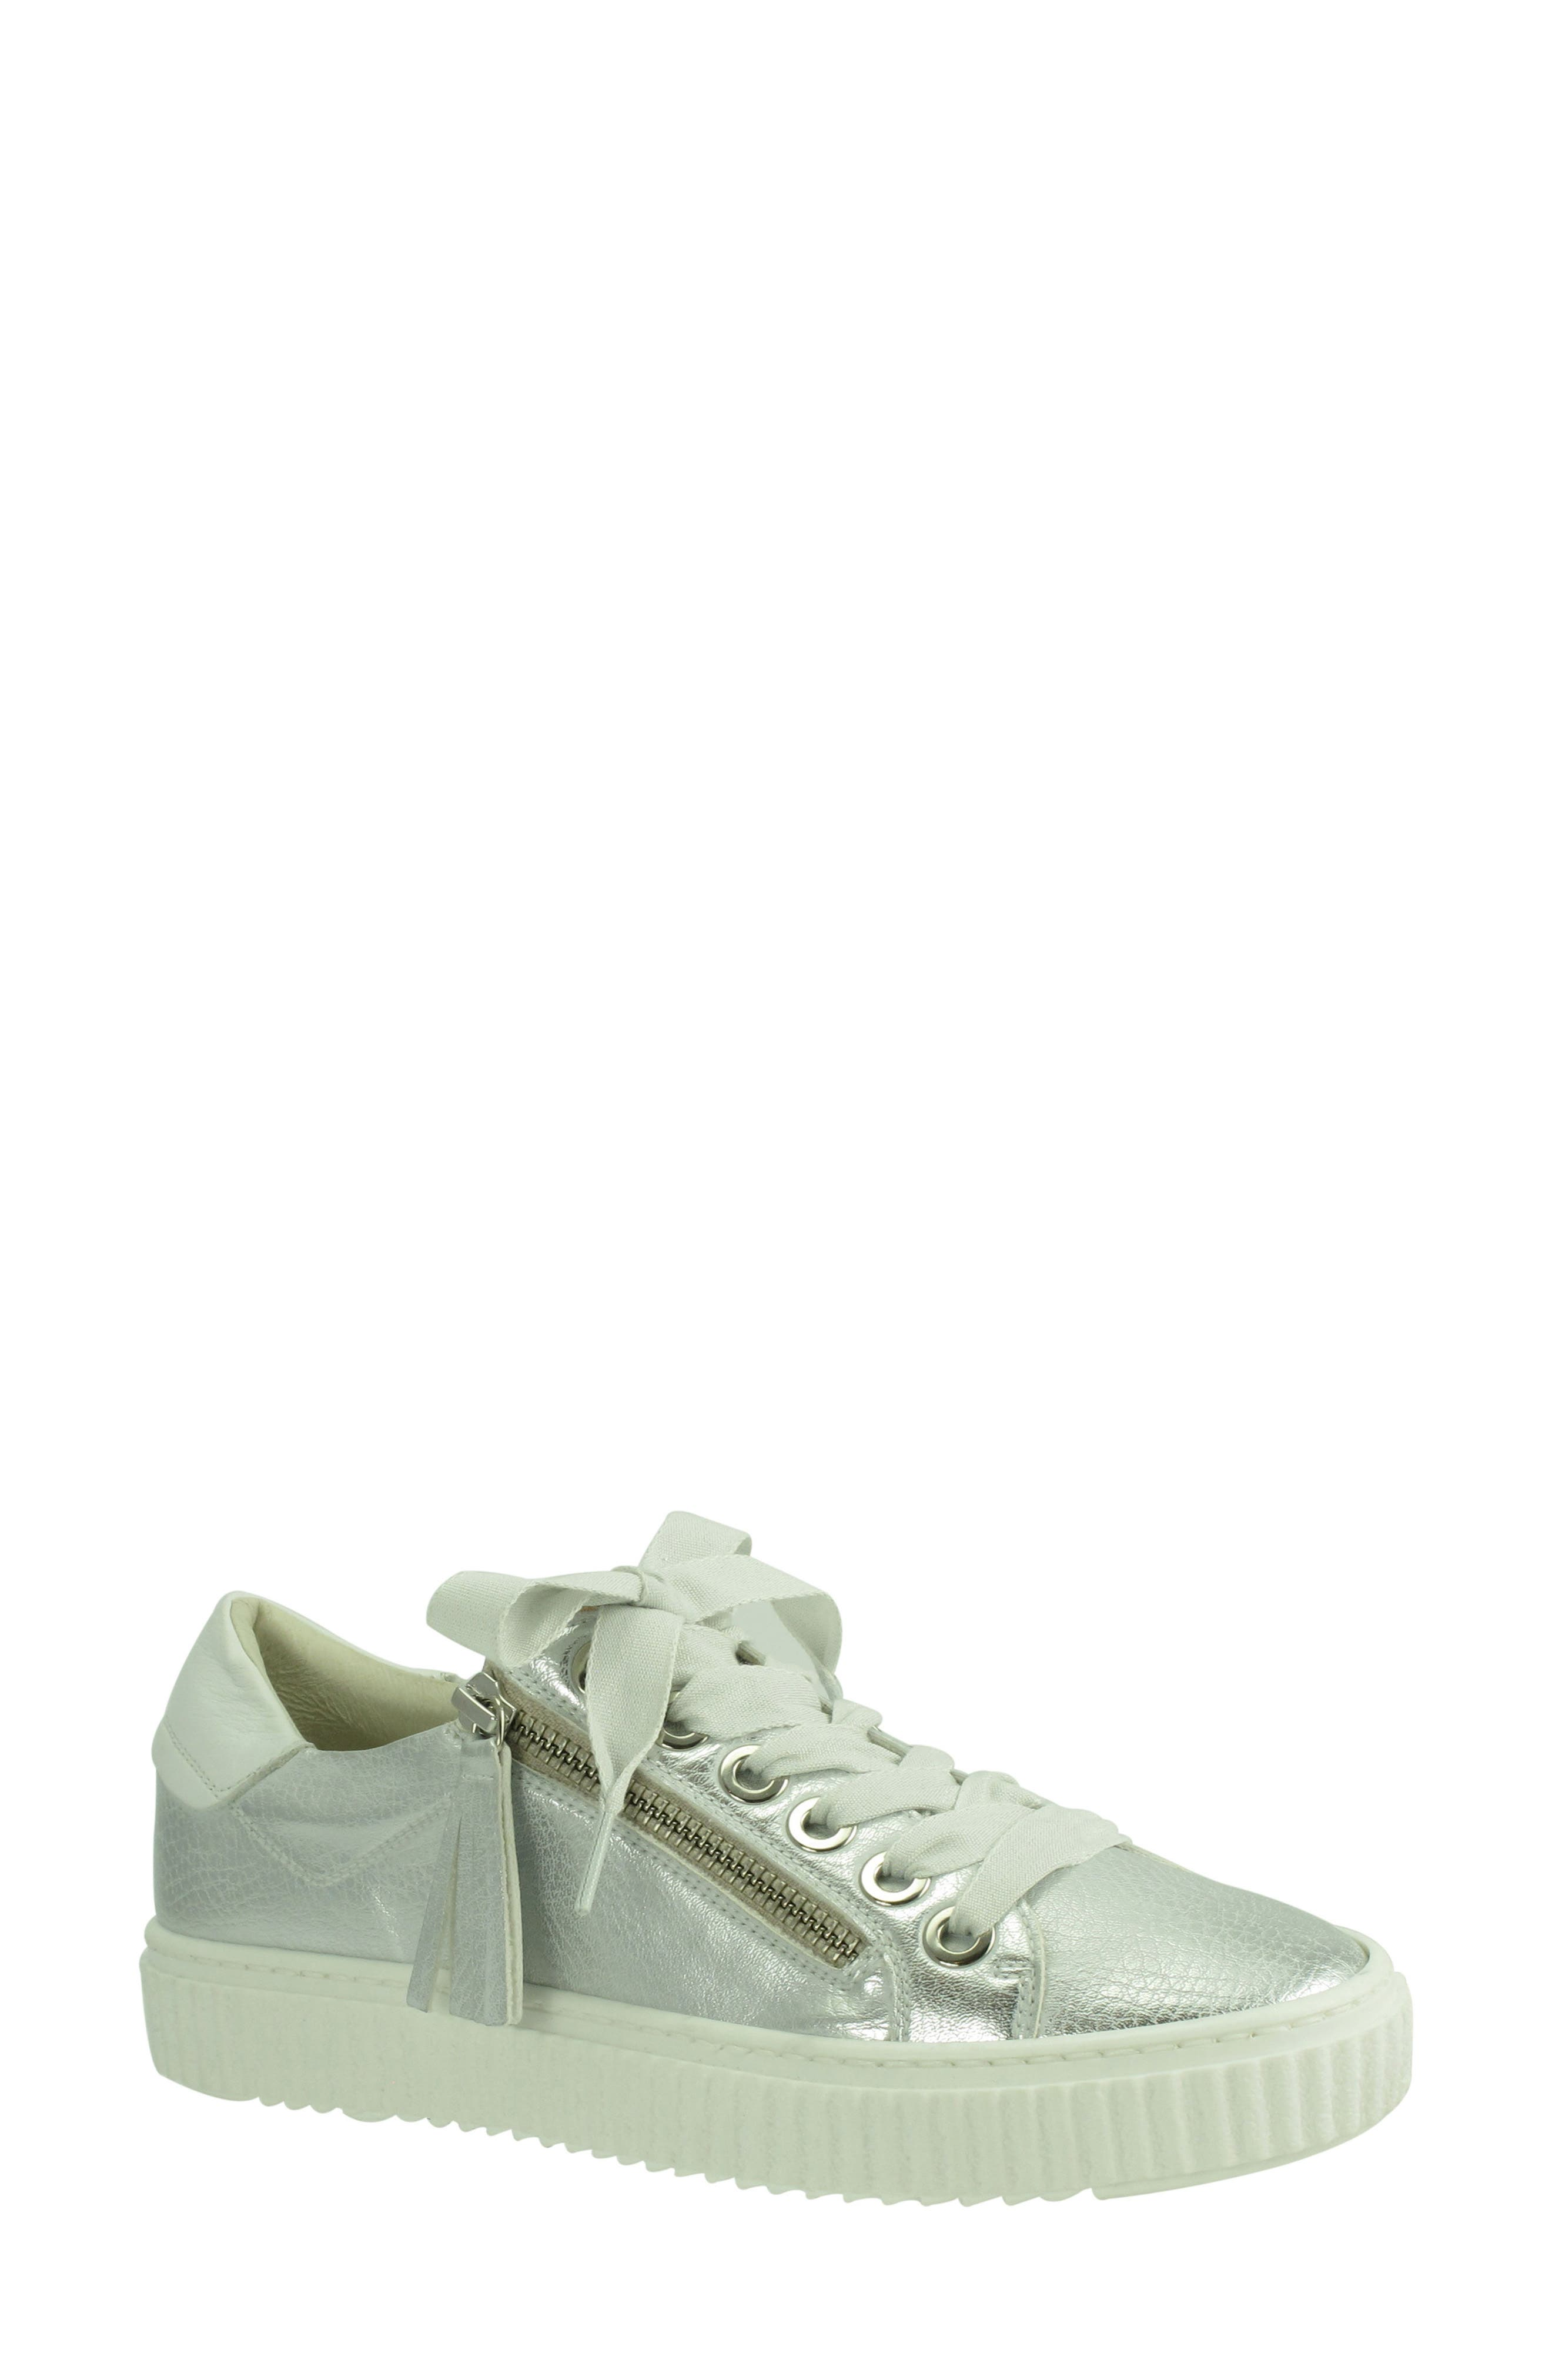 Posey Sneaker,                             Main thumbnail 1, color,                             SILVER LEATHER